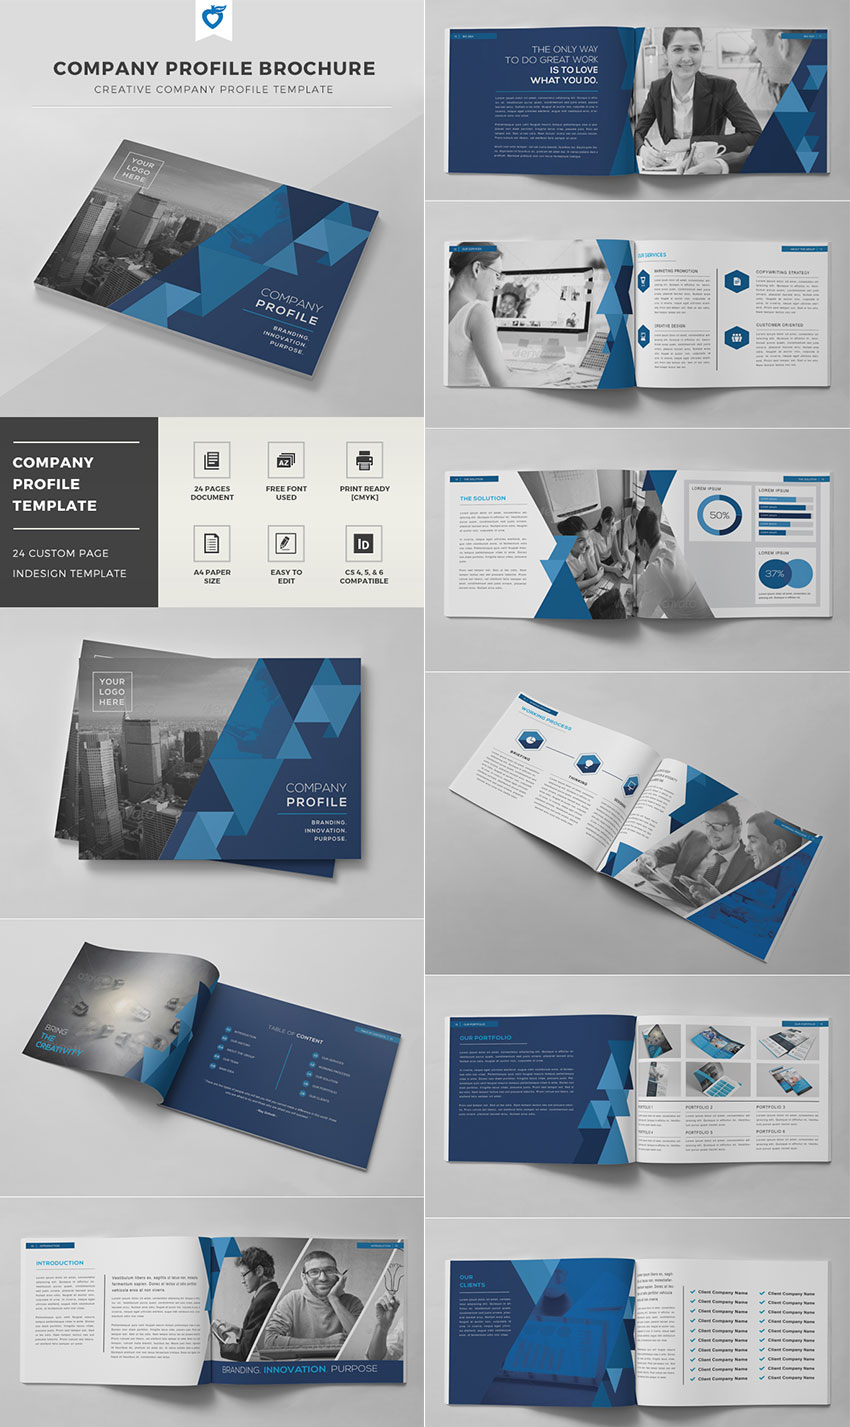 Best InDesign Brochure Templates For Creative Business Marketing - Brochure indesign templates